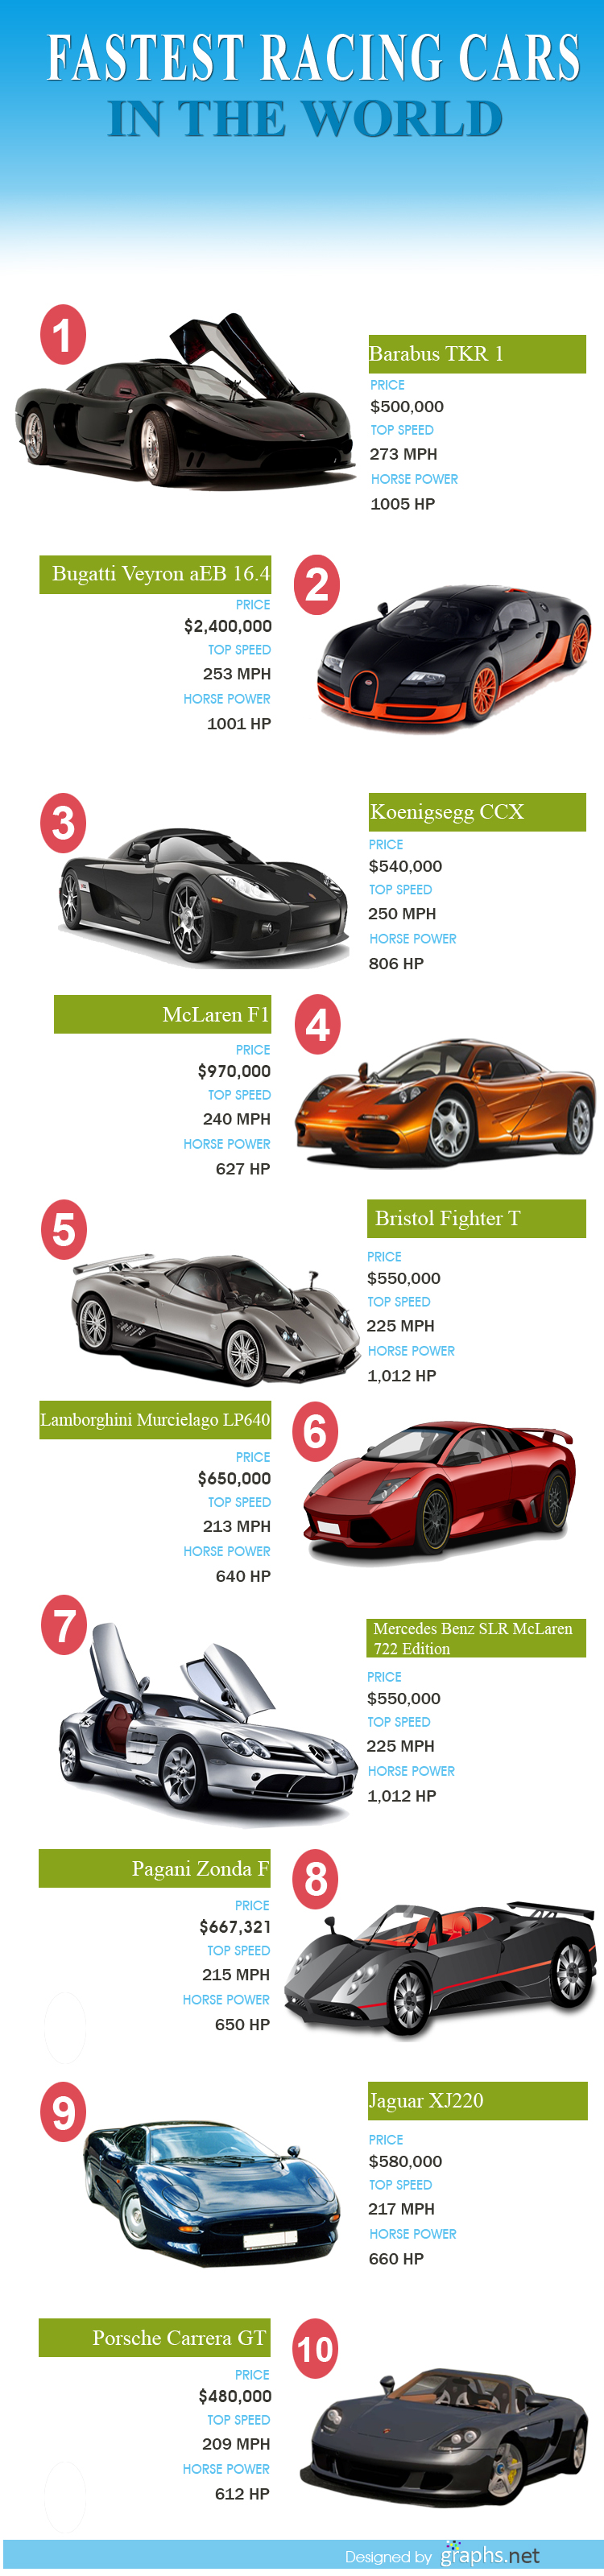 Top 10 Fastest Racing Cars In The World Infographics